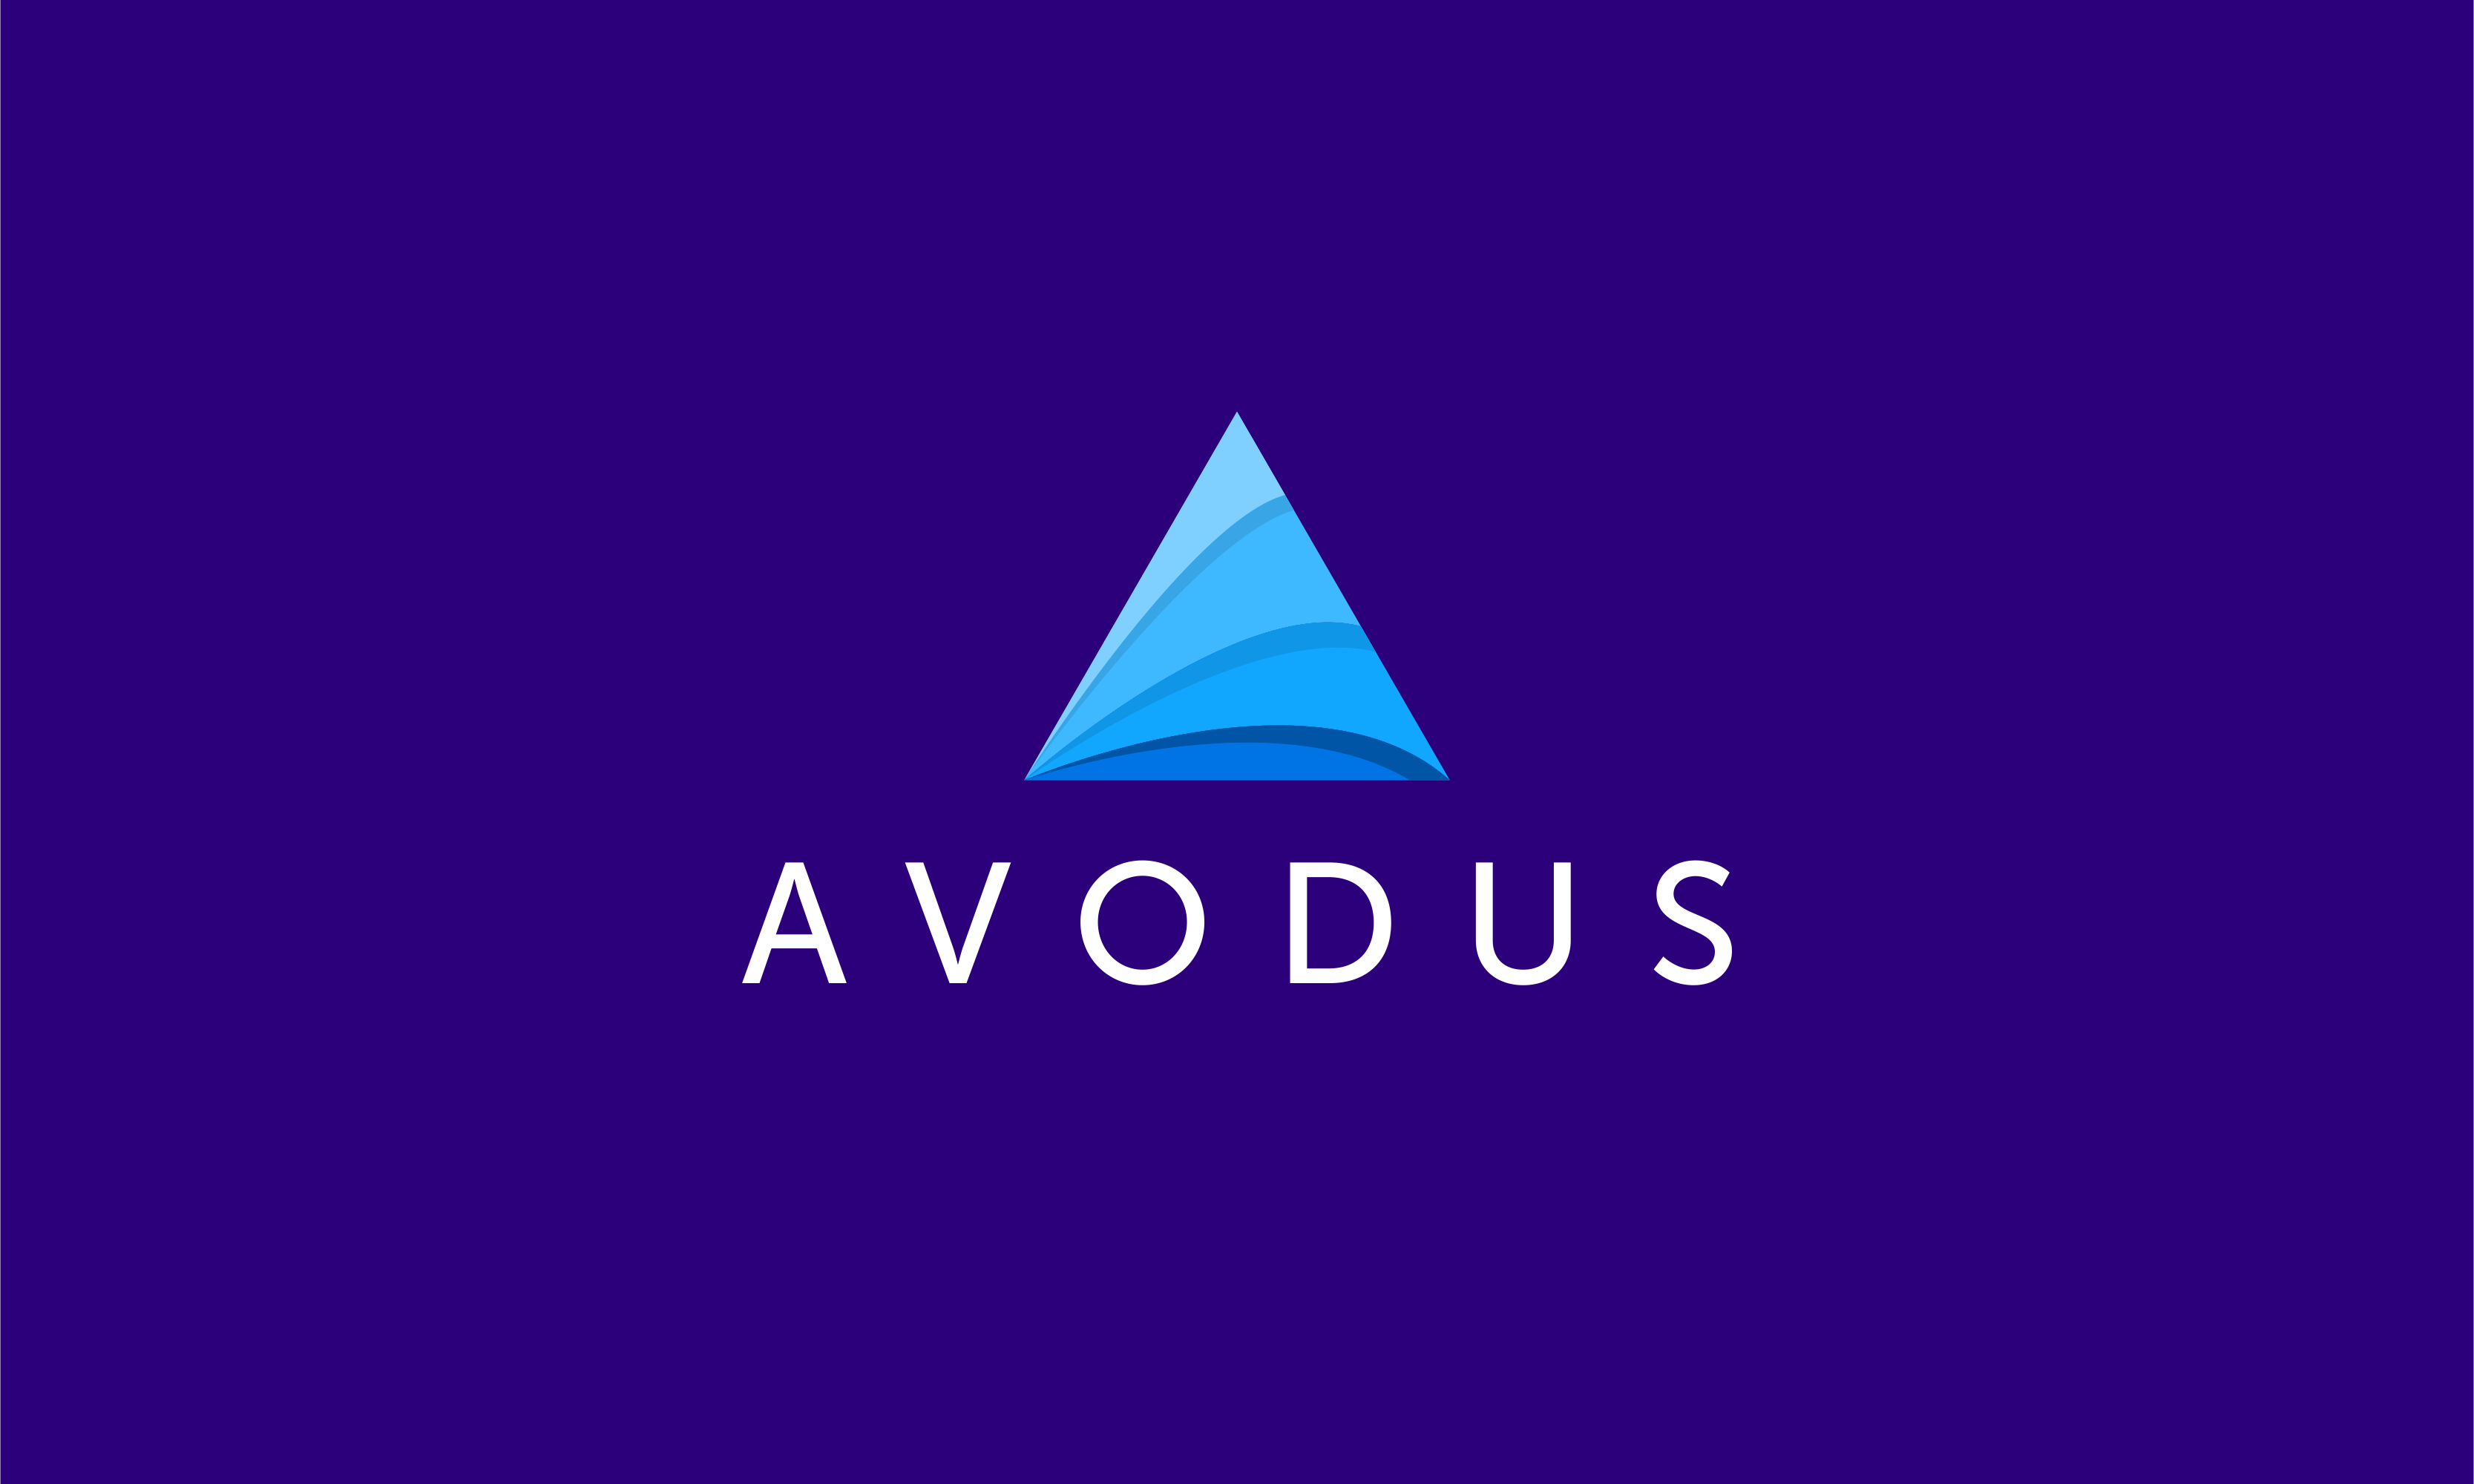 Avodus - Business domain name for sale